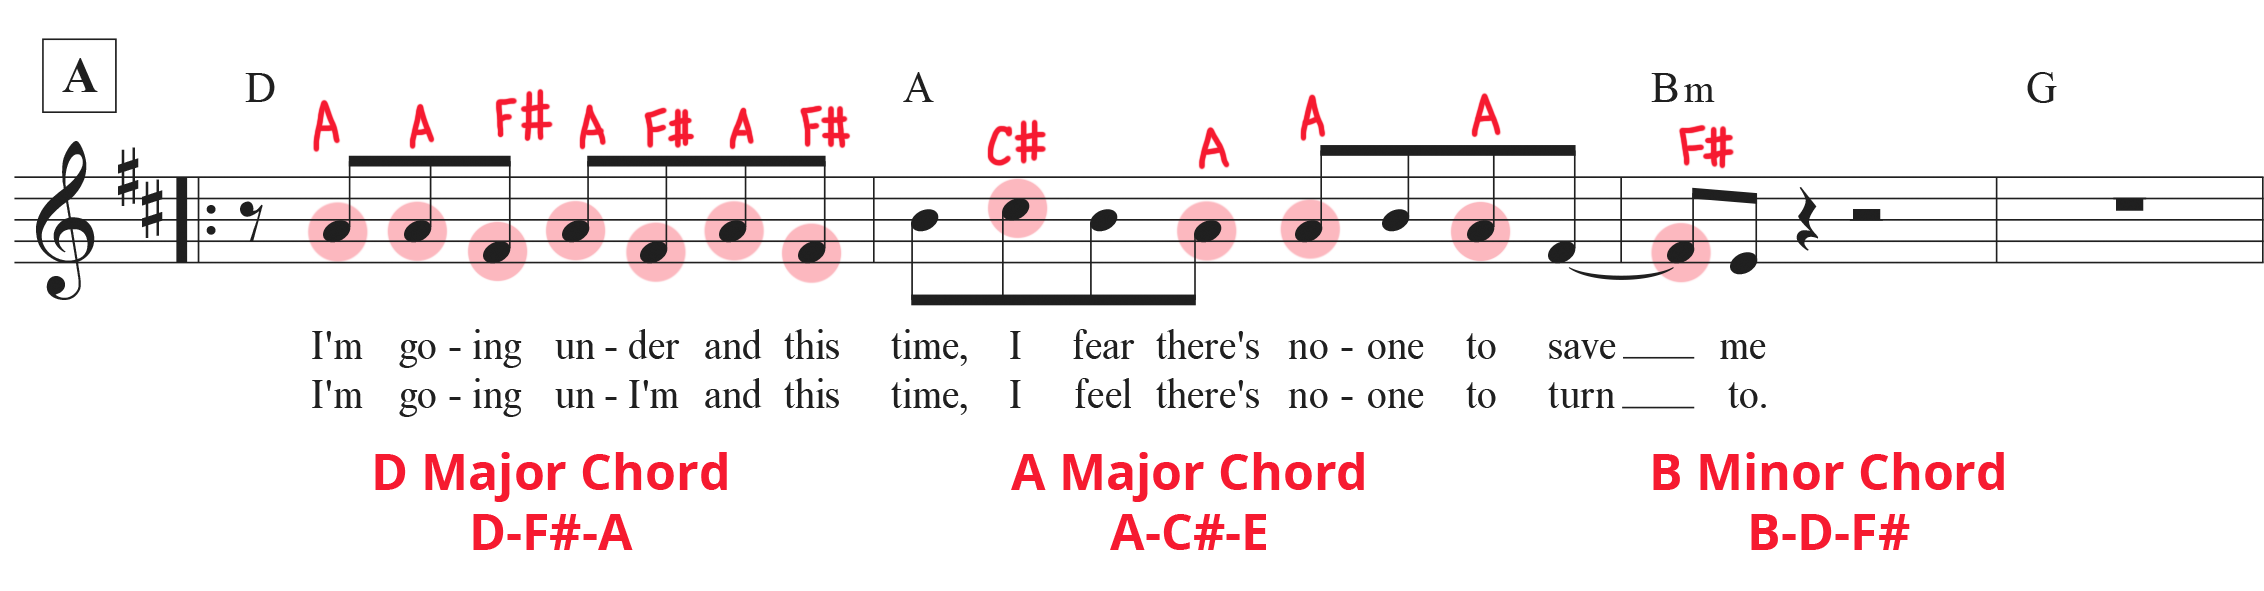 """Piano chord progression example: Mark-up of sheet music for """"Someone You Loved"""" showing chords in each measure and which notes from the melody belong to each chord."""